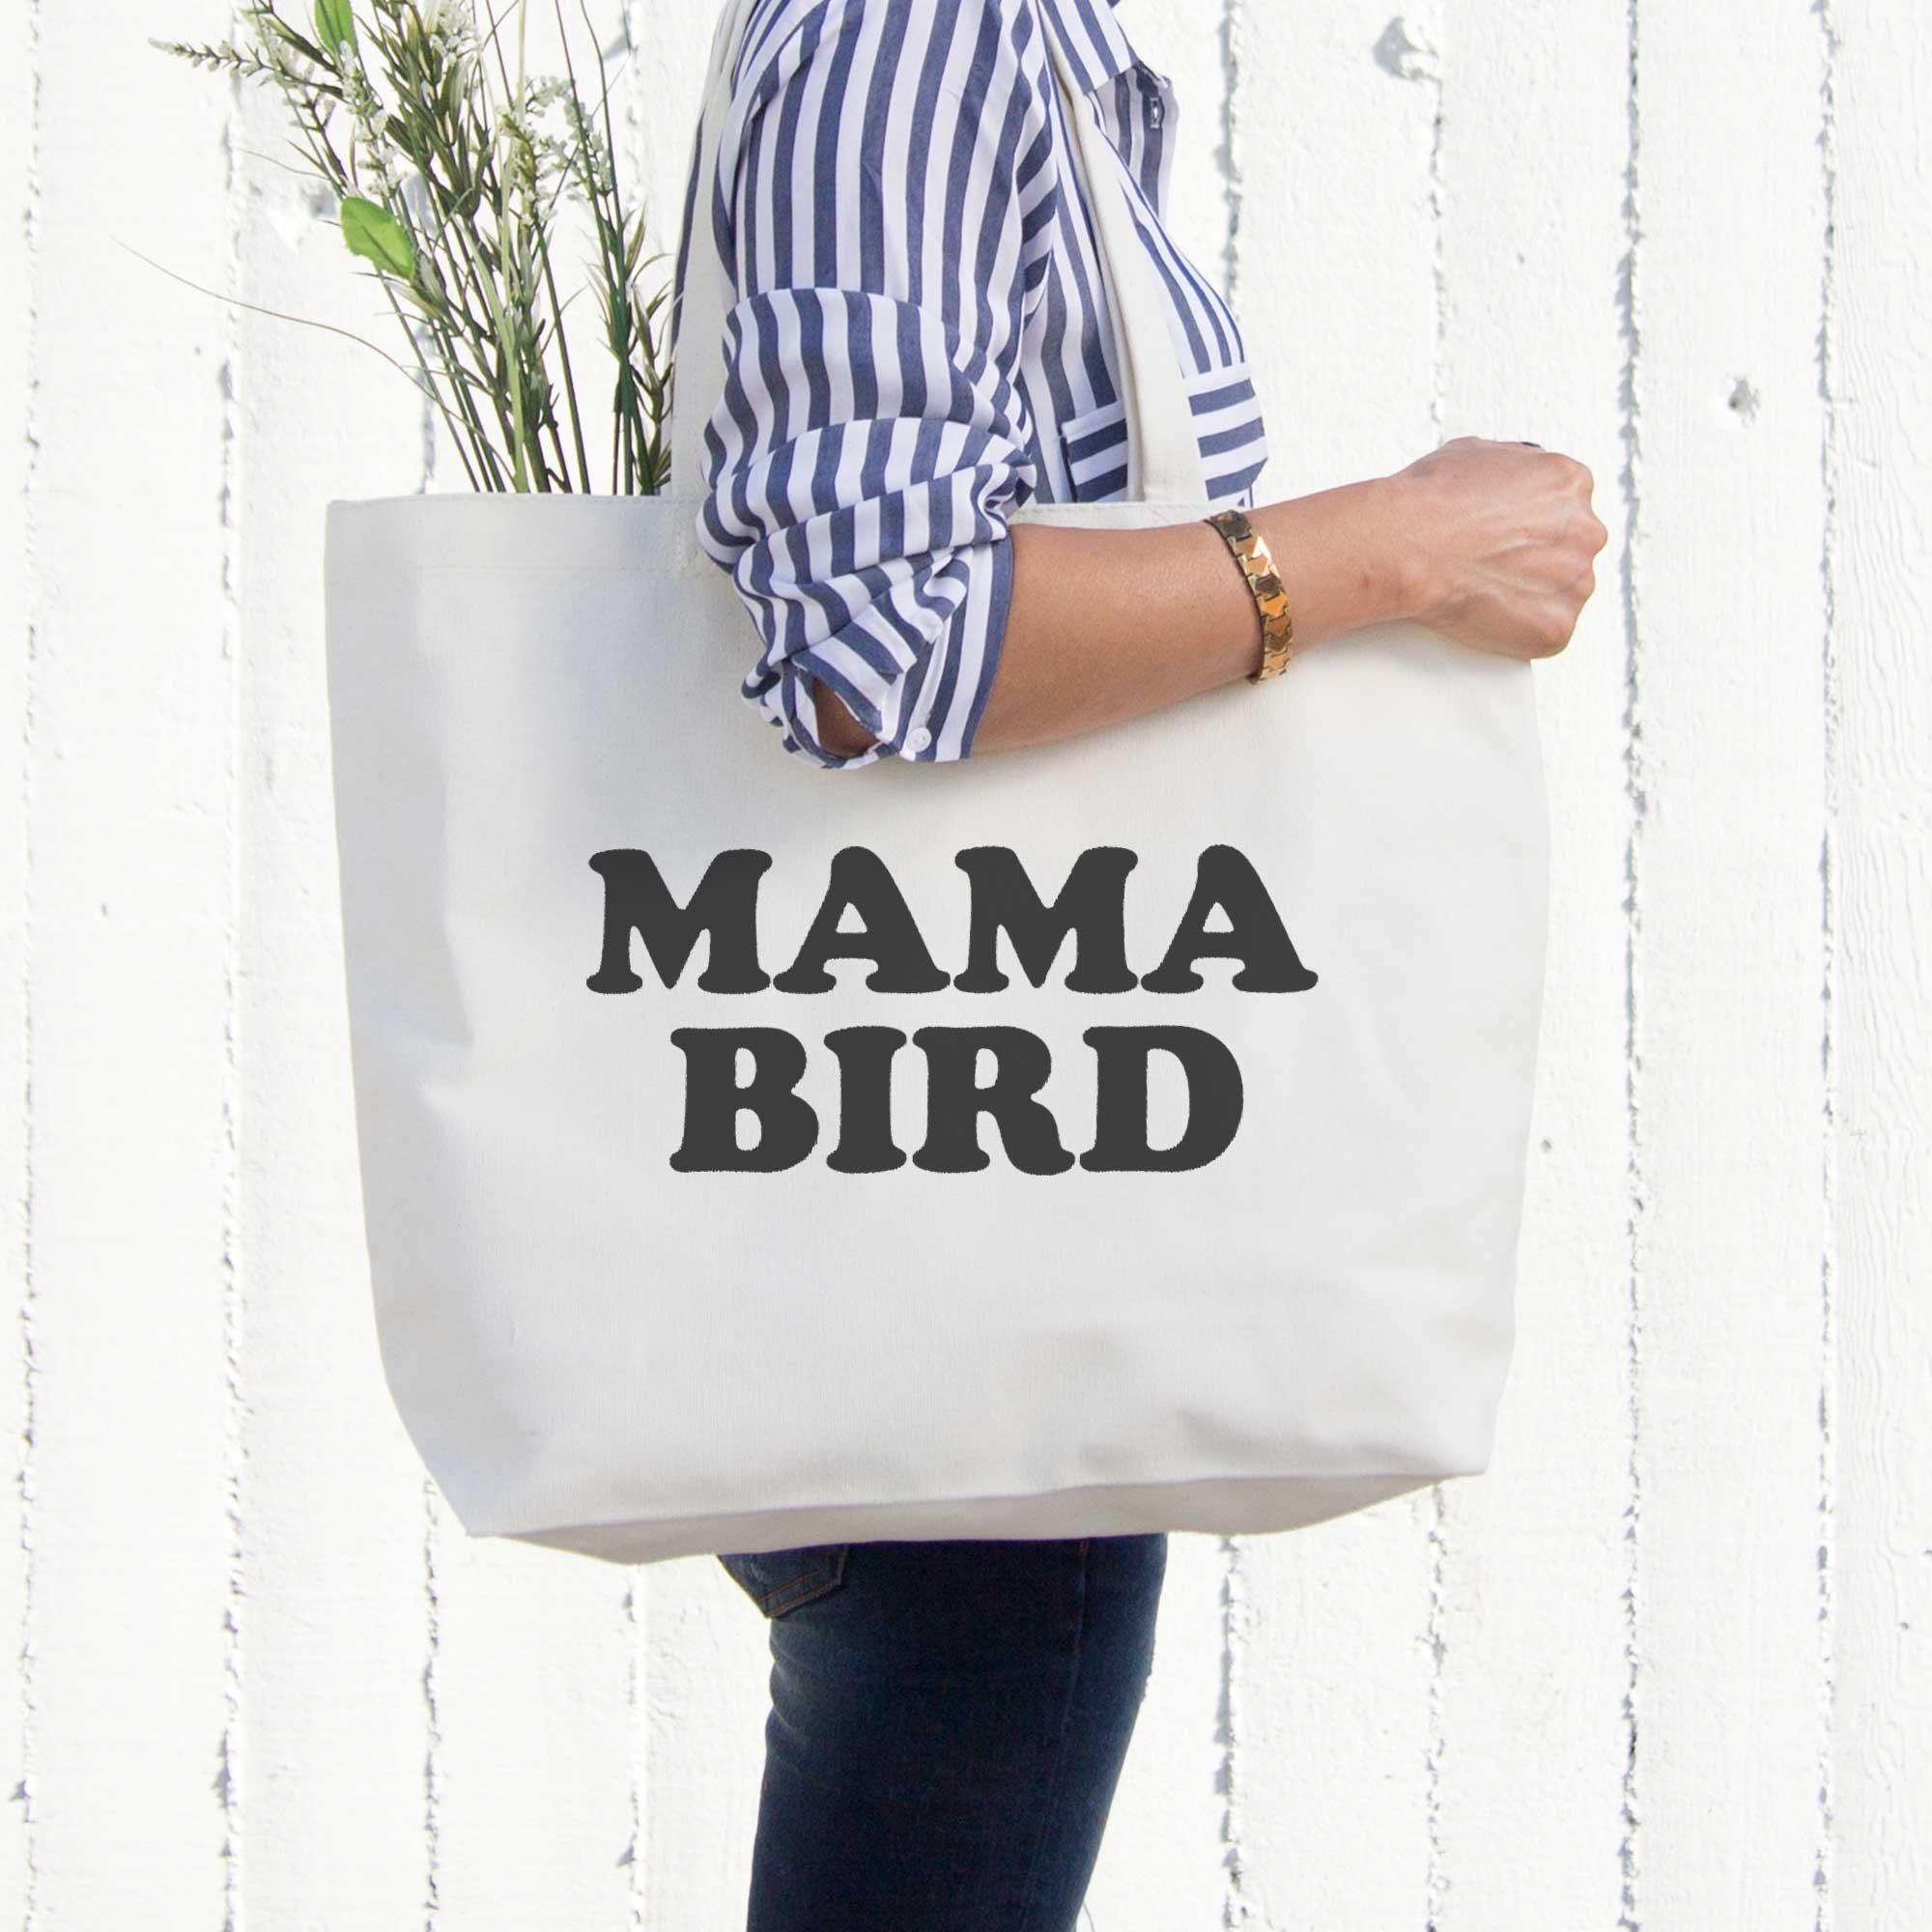 Mama Bird Canvas Bag Grocery Diaper Book Bags Gifts For Mom Mothers Day Gift by 365 In Love (Image #2)